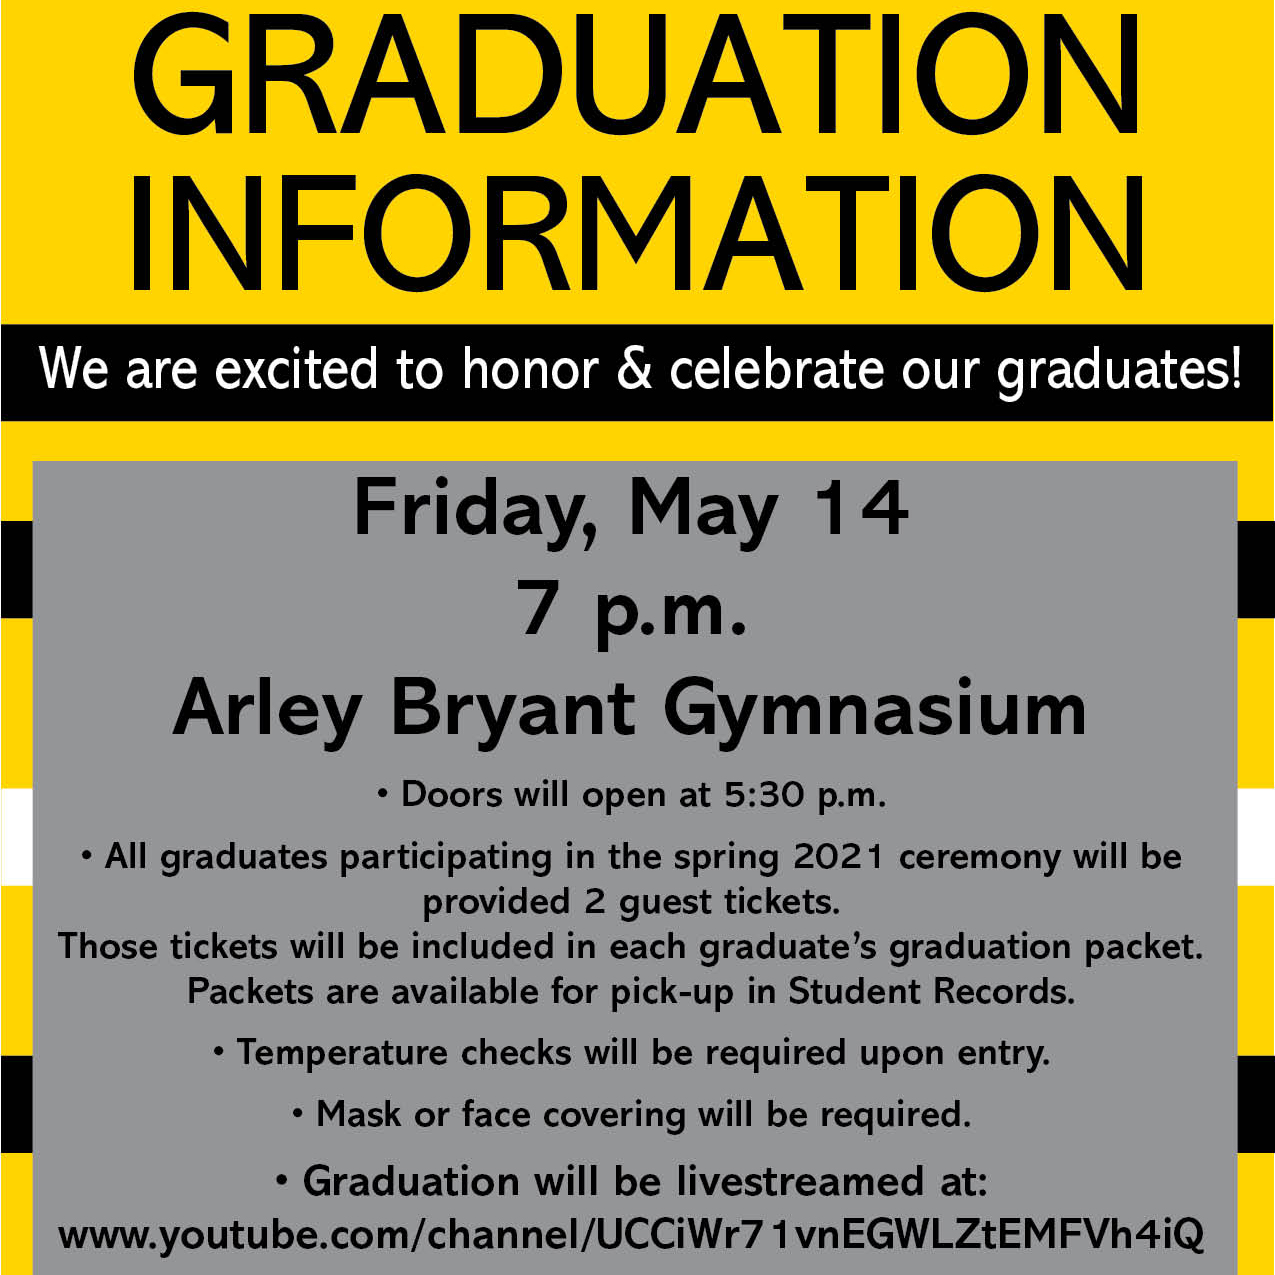 A photo of the 2021 Graduation information.